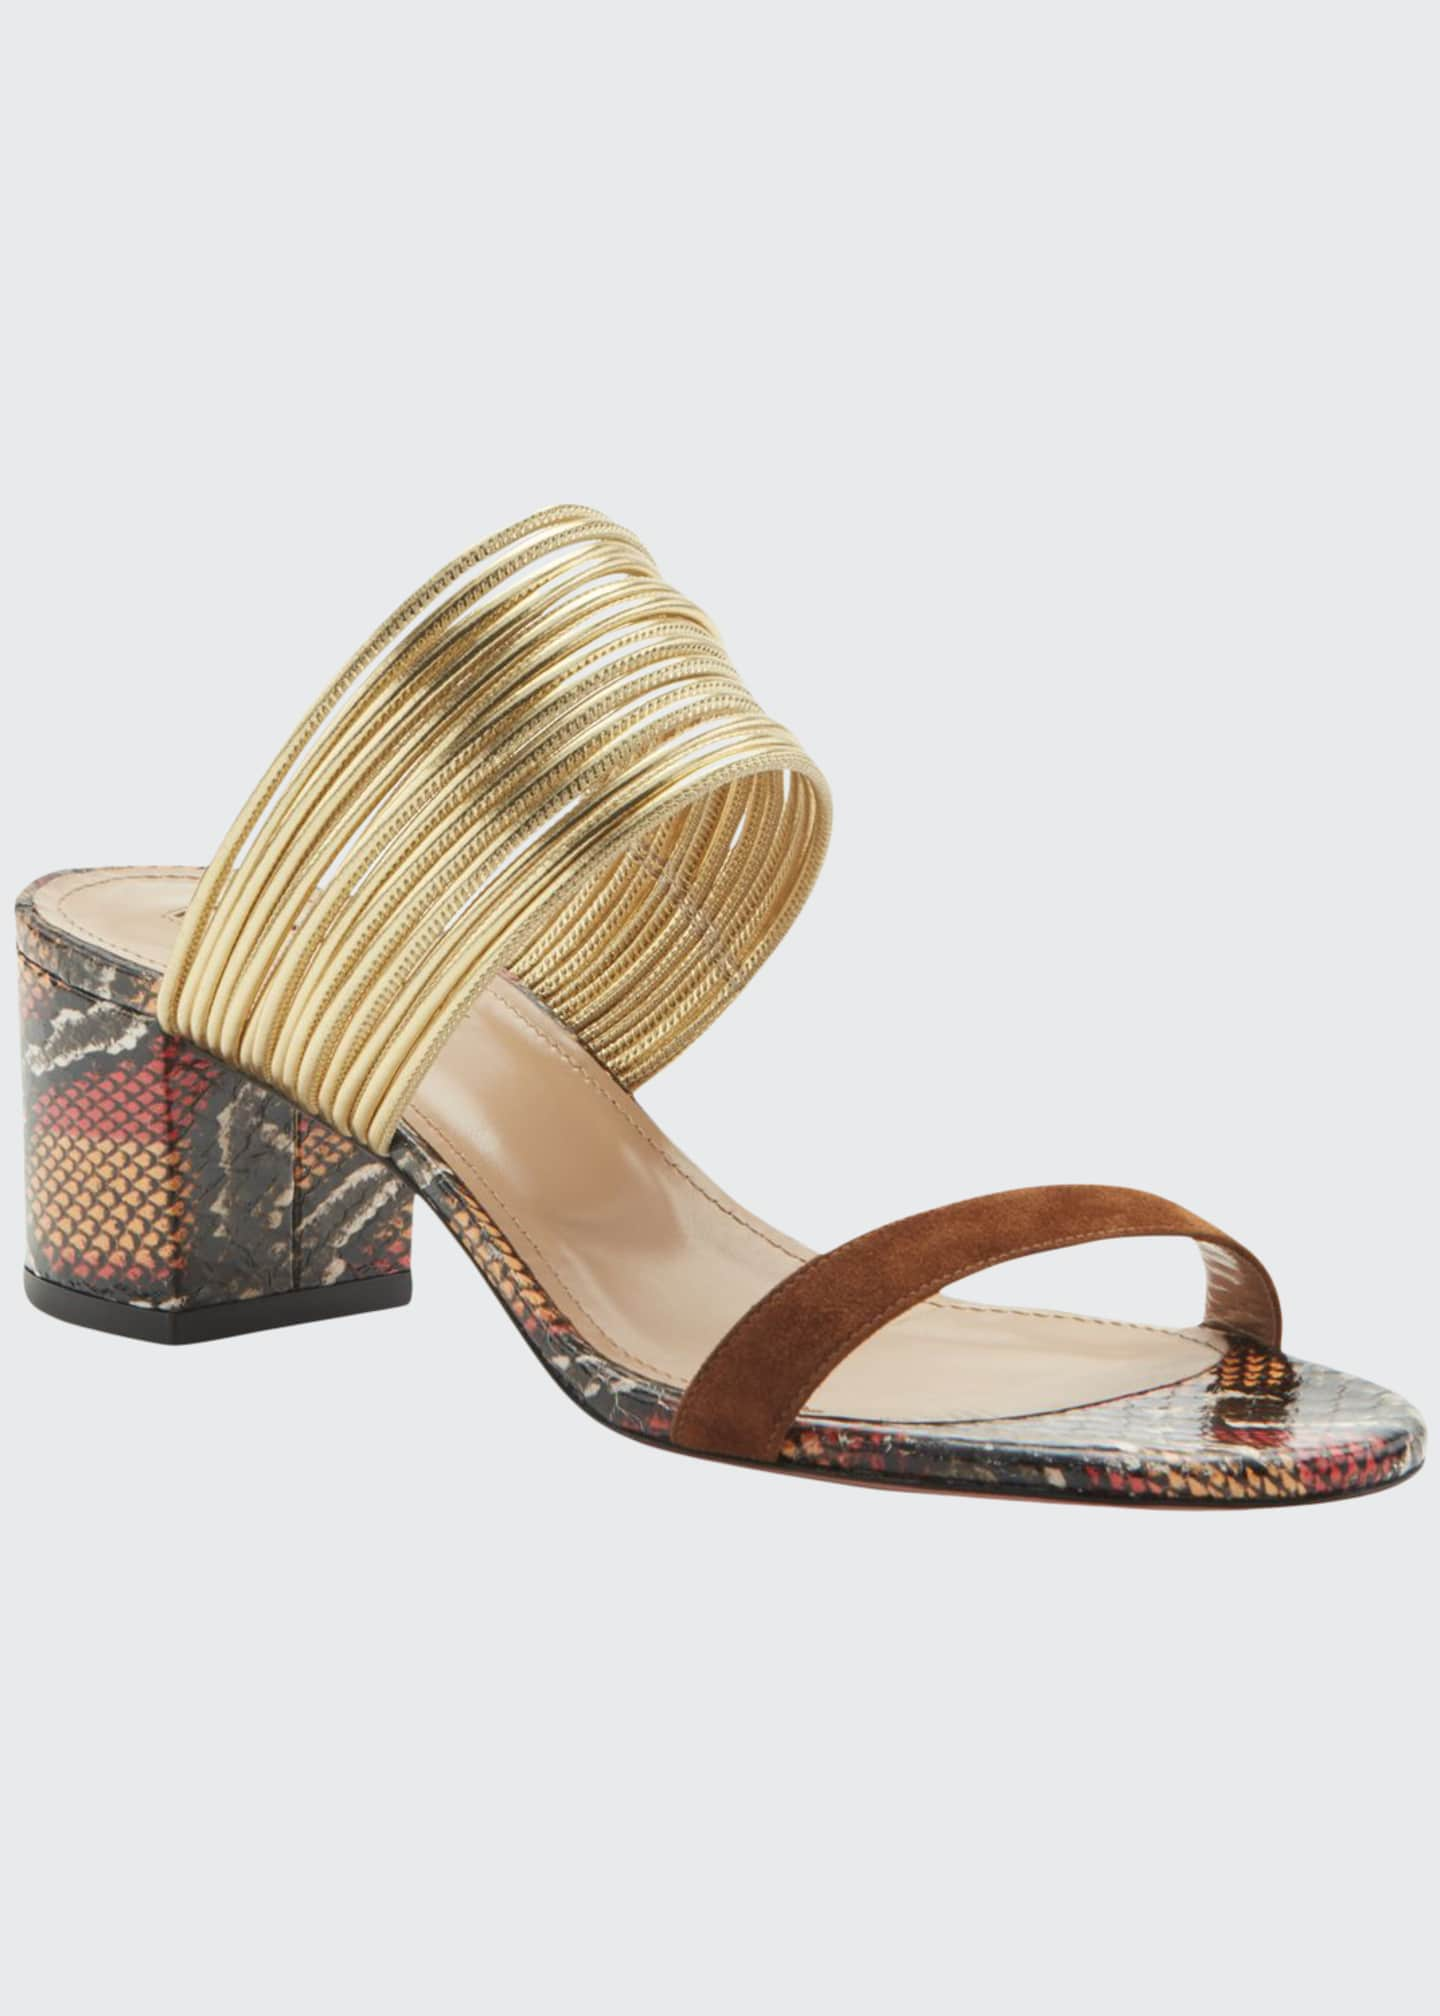 Aquazzura Rendez Vous Snake-Print Leather Slide Sandals